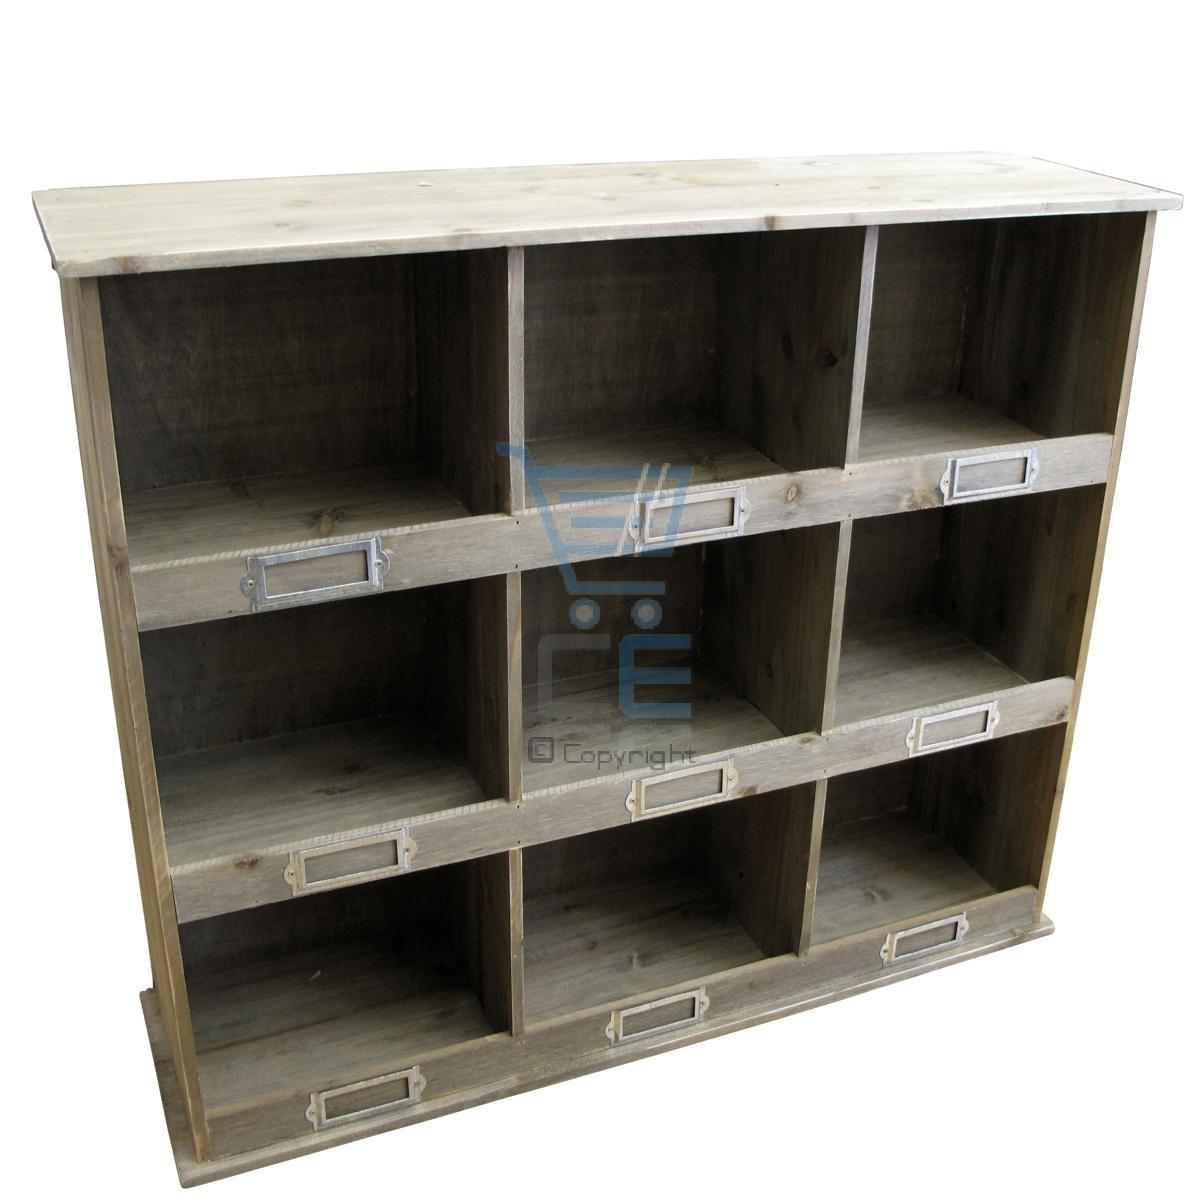 Industrial Wall Shelving Units Vintage 9 Section Wooden Storage Unit Industrial Style